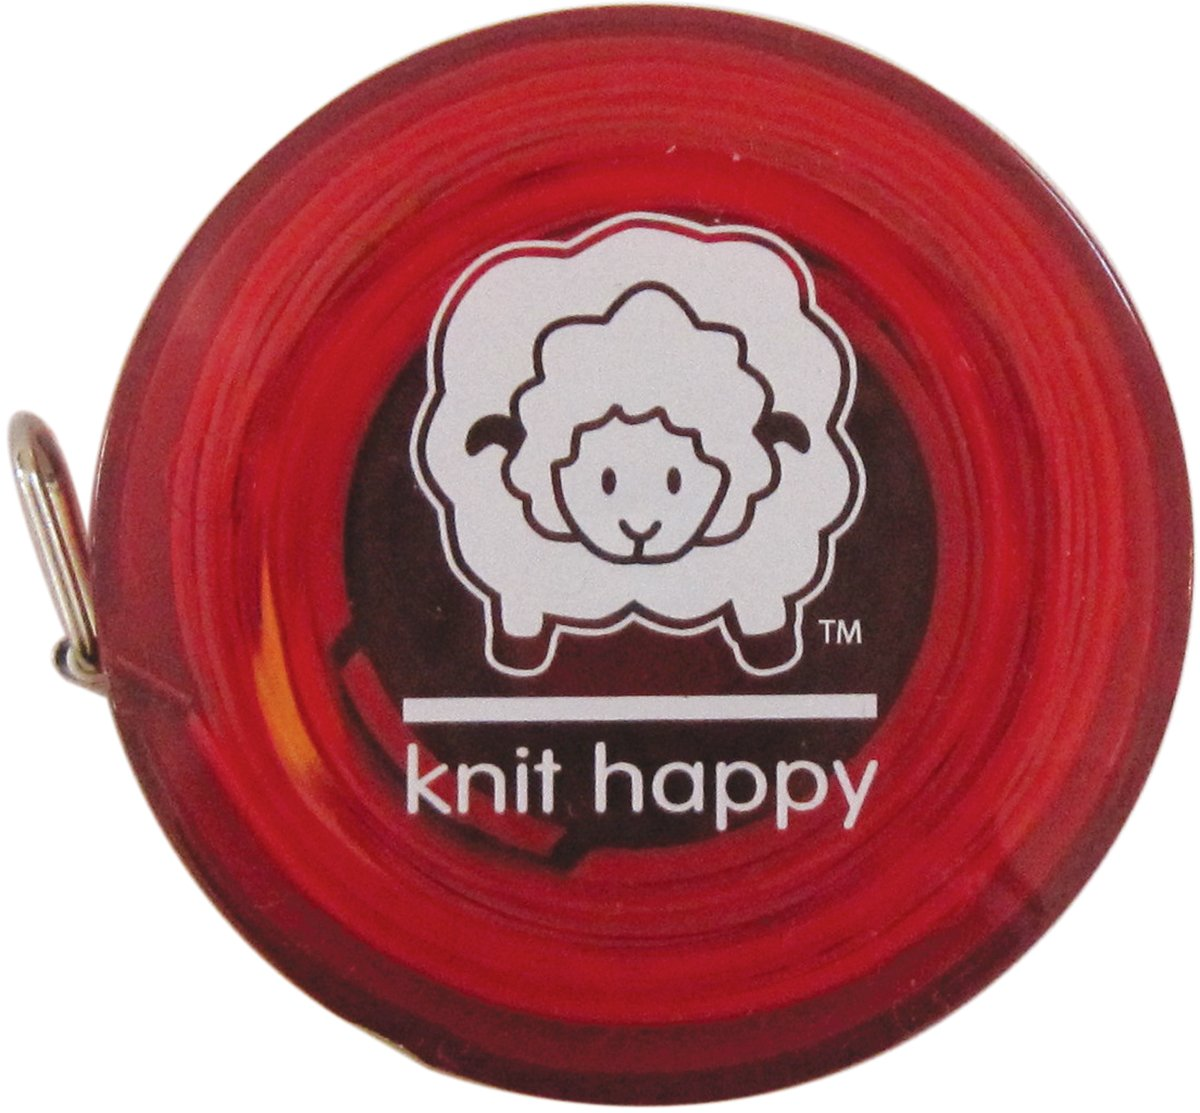 K1C2 Knit Happy Tape Measure-Red KH652-RE